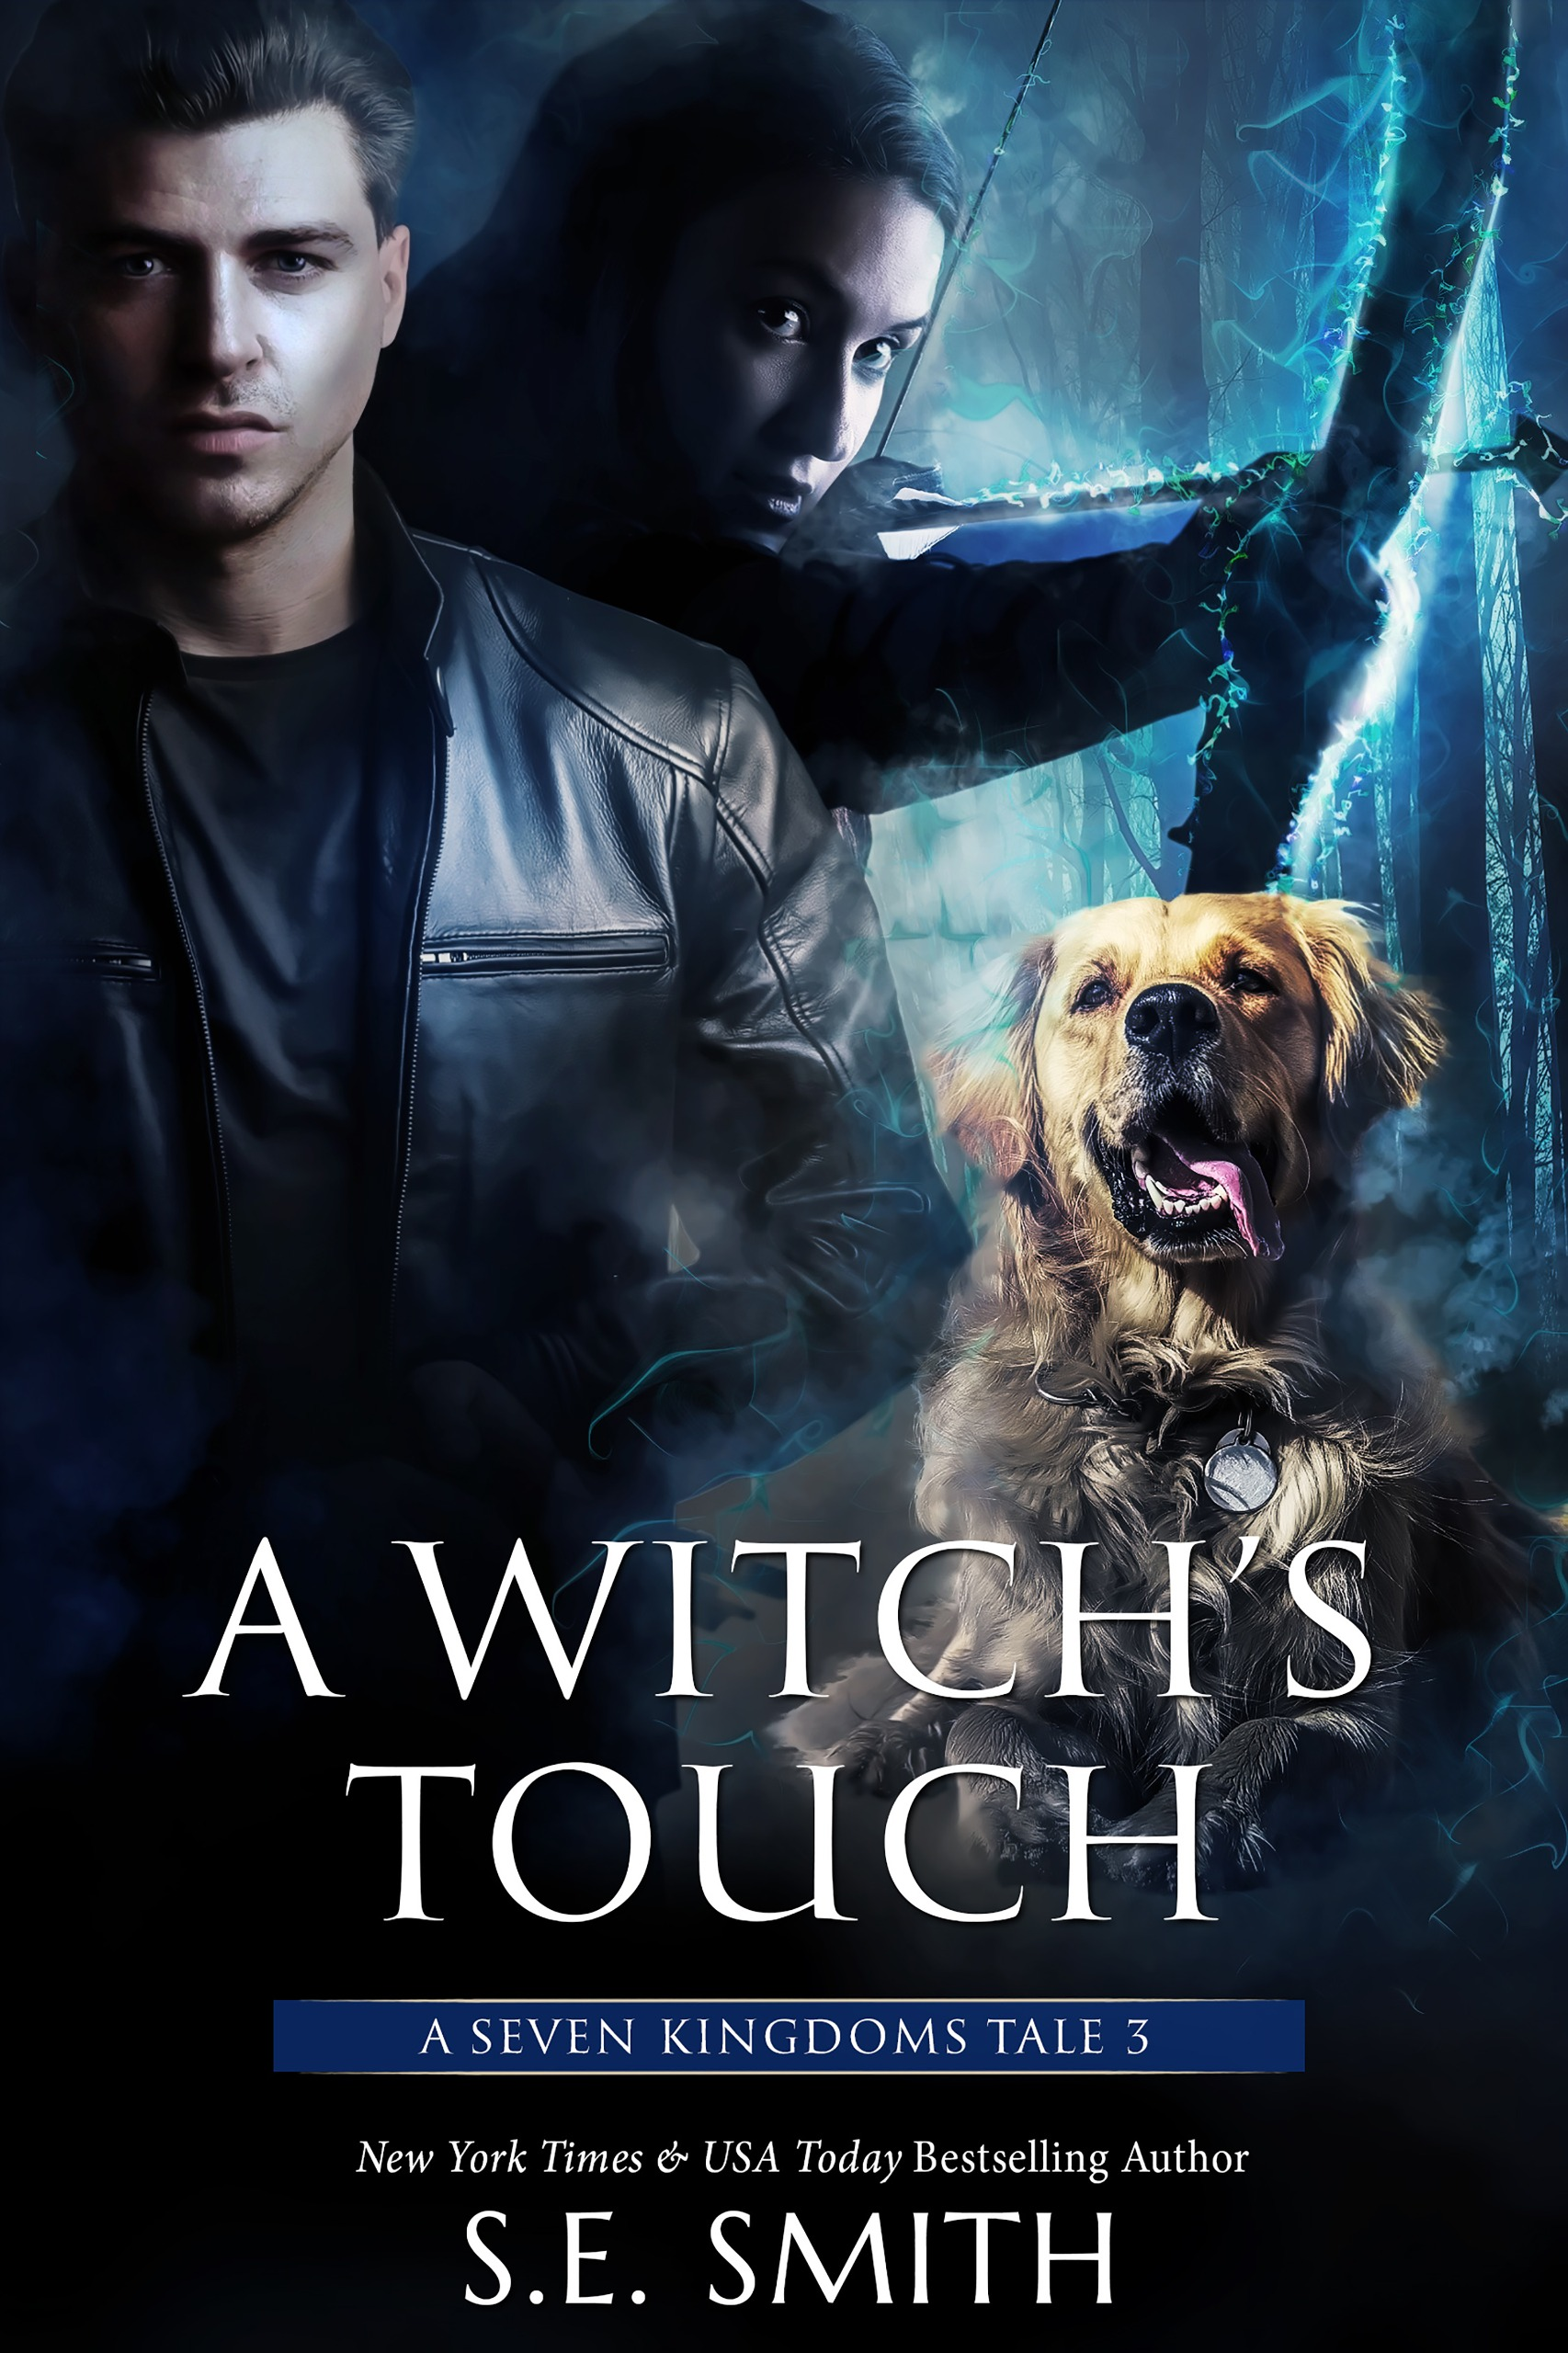 A Witch's Touch: A Seven Kingdoms Tale 3 (ebook: Kindle and epub)